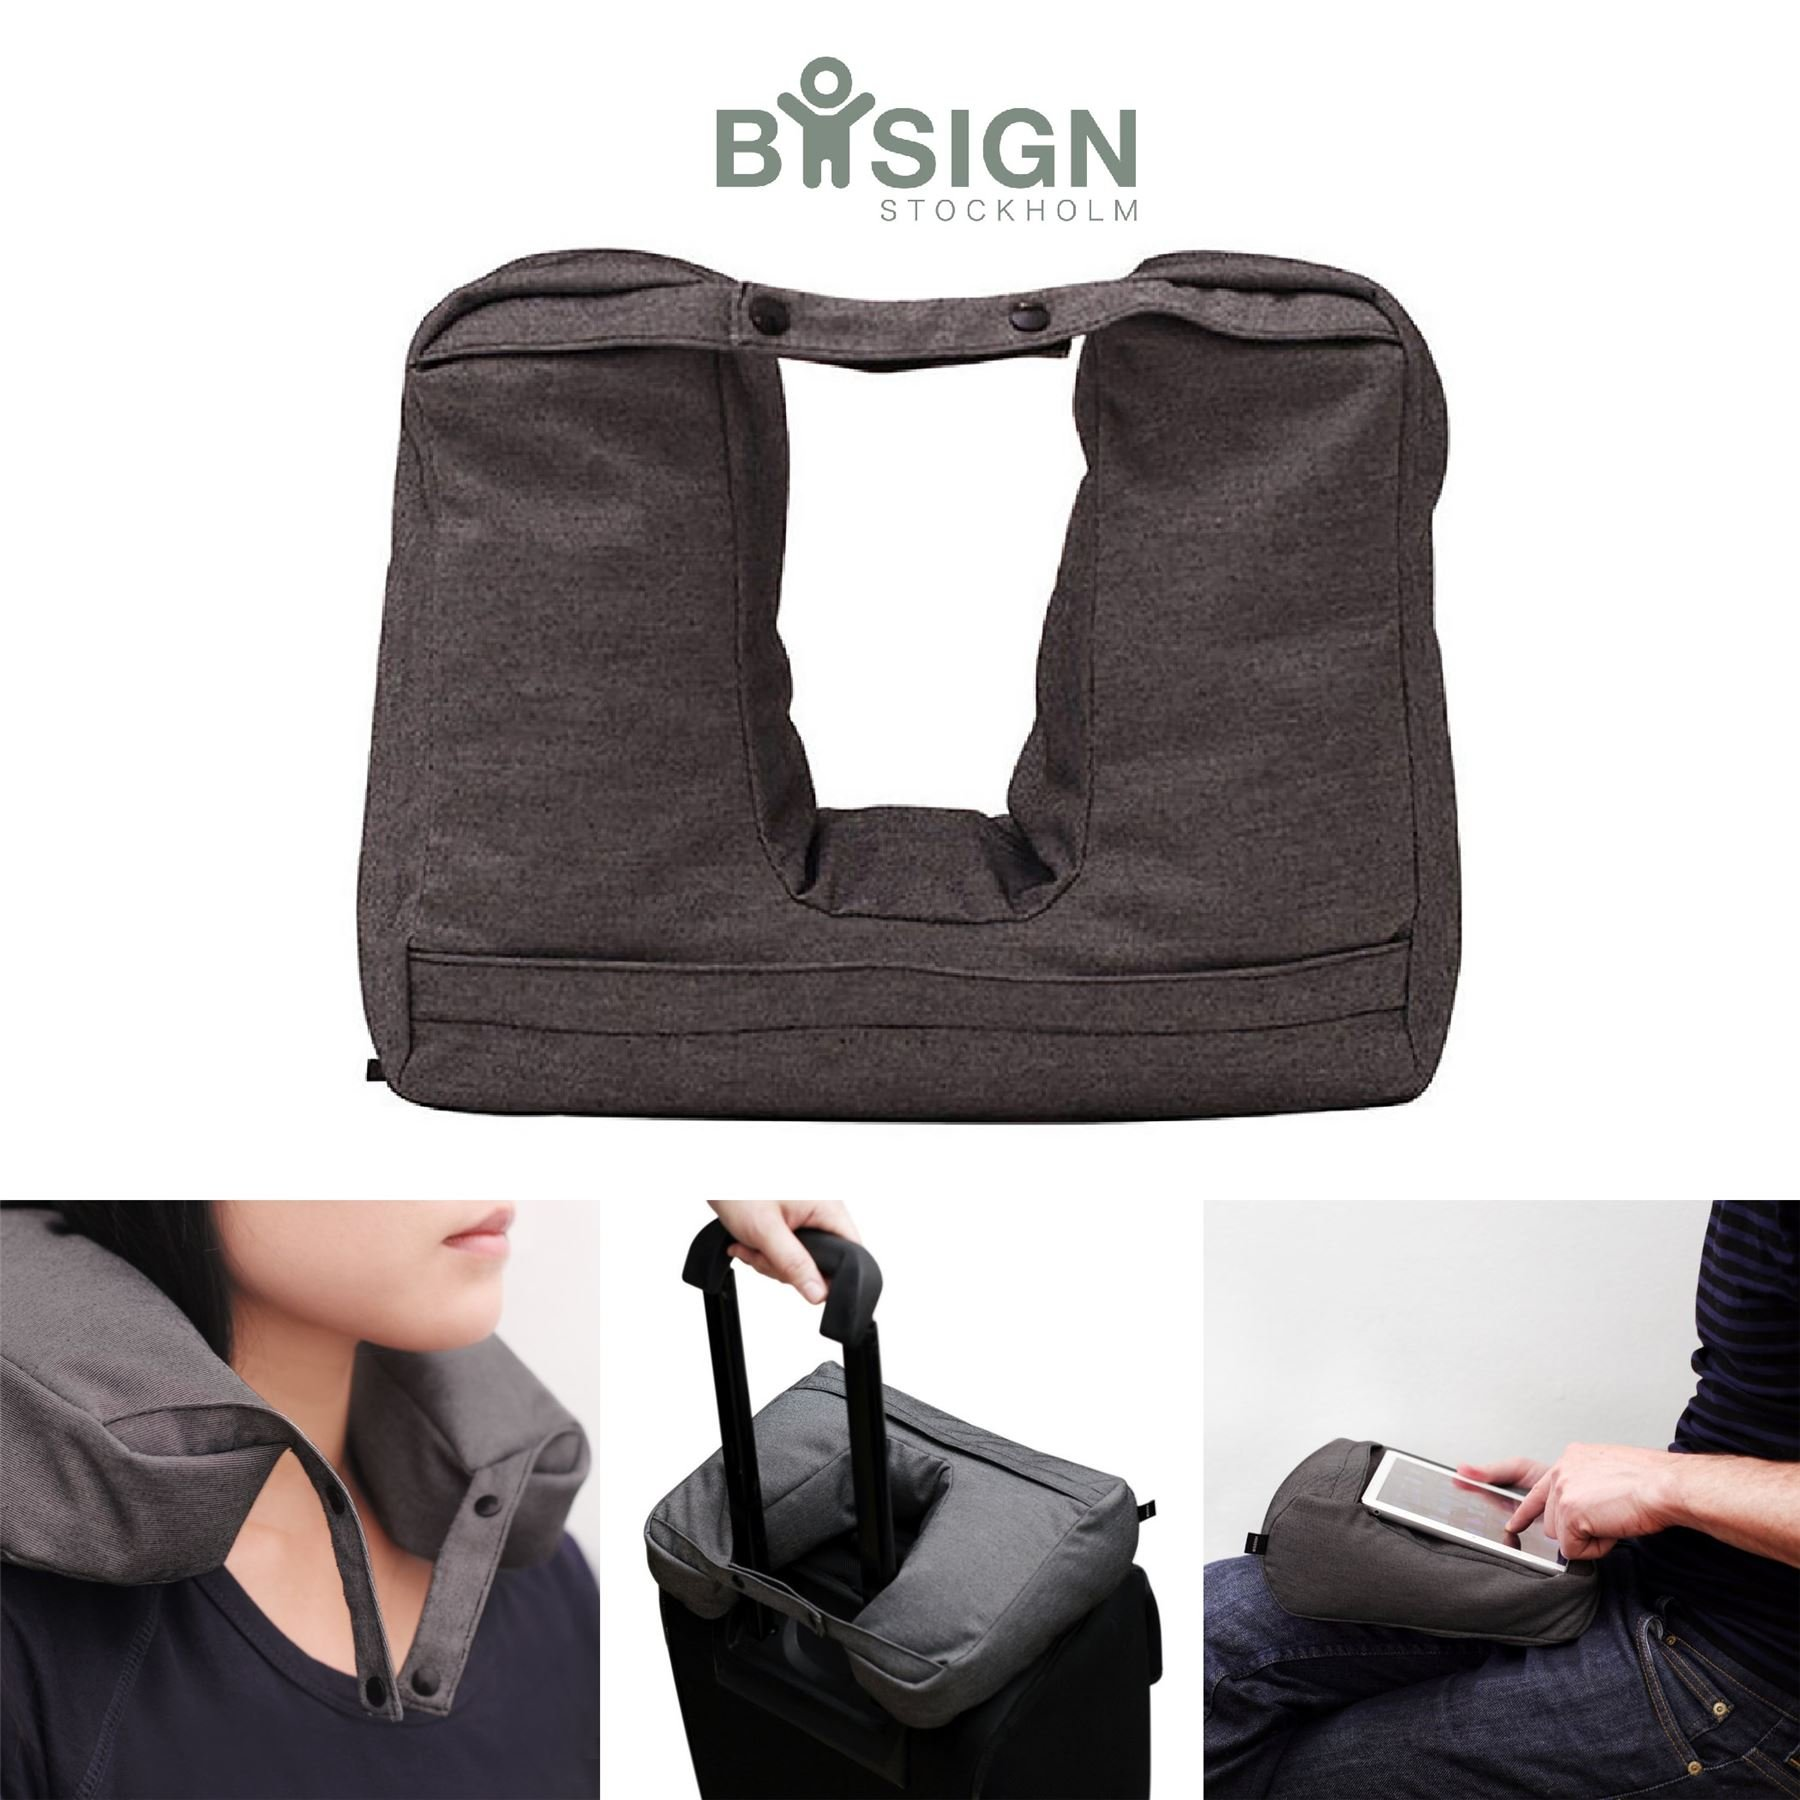 Bosign 2-in-1 Tablet and Travel Pillow